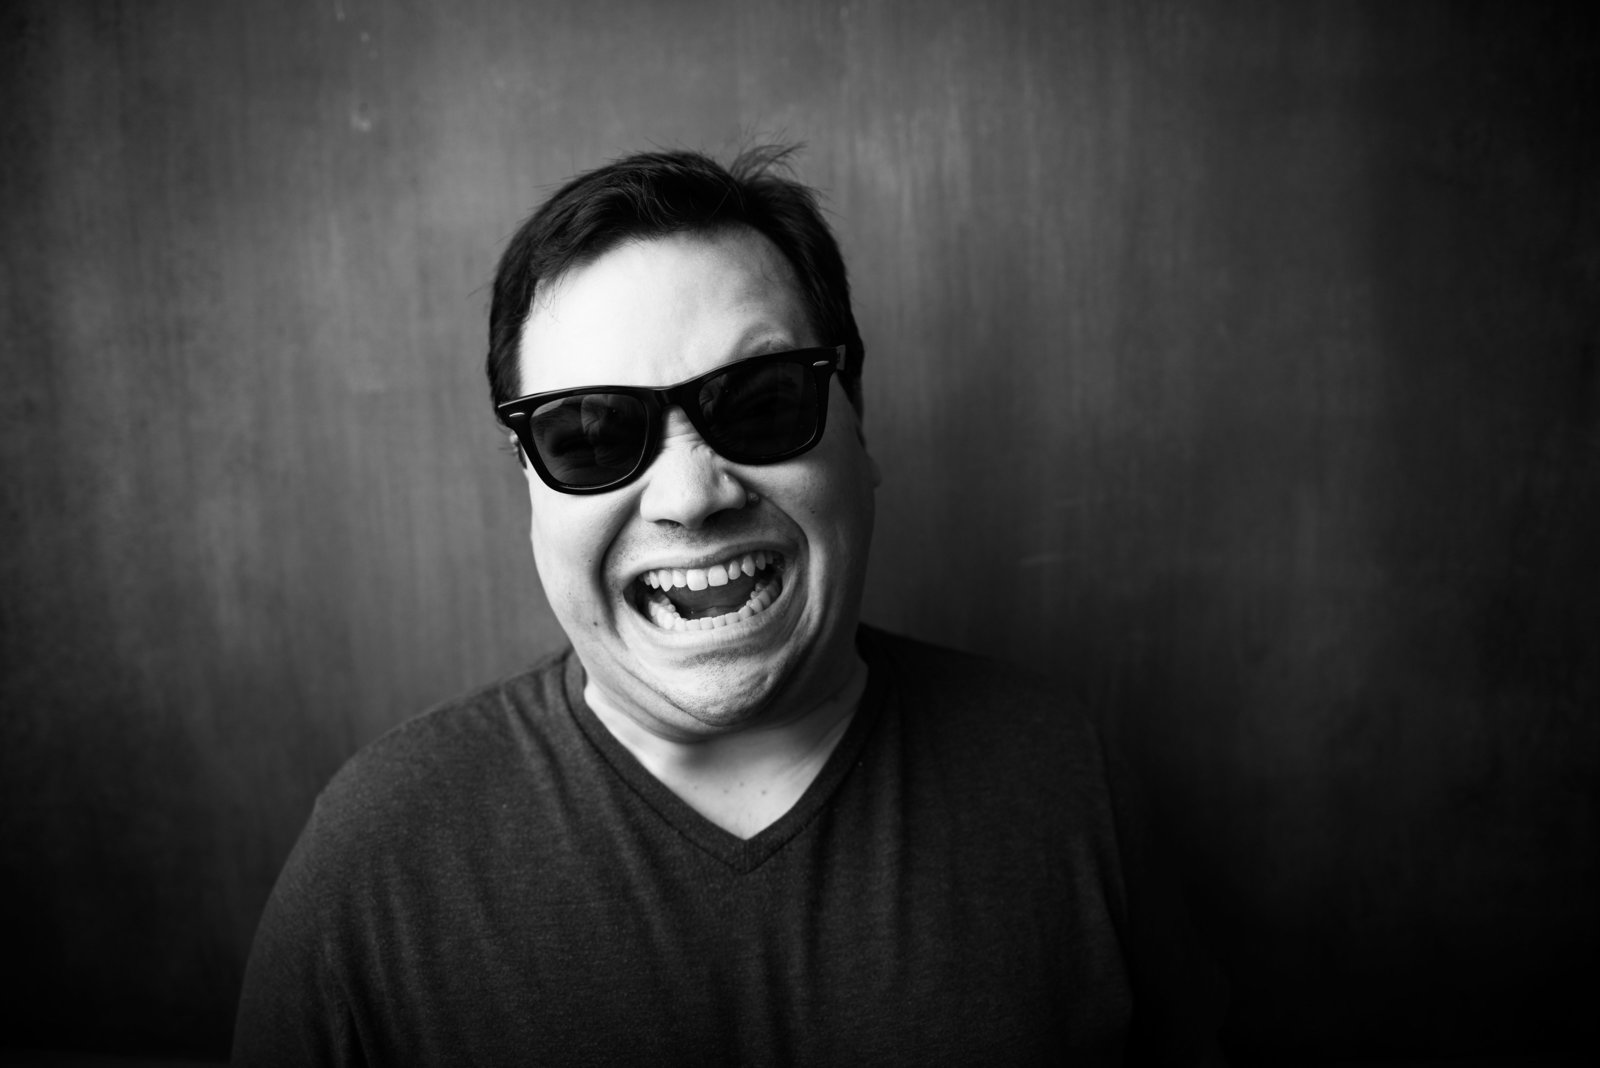 Studio portrait, black and white, man screaming with sunglasses.